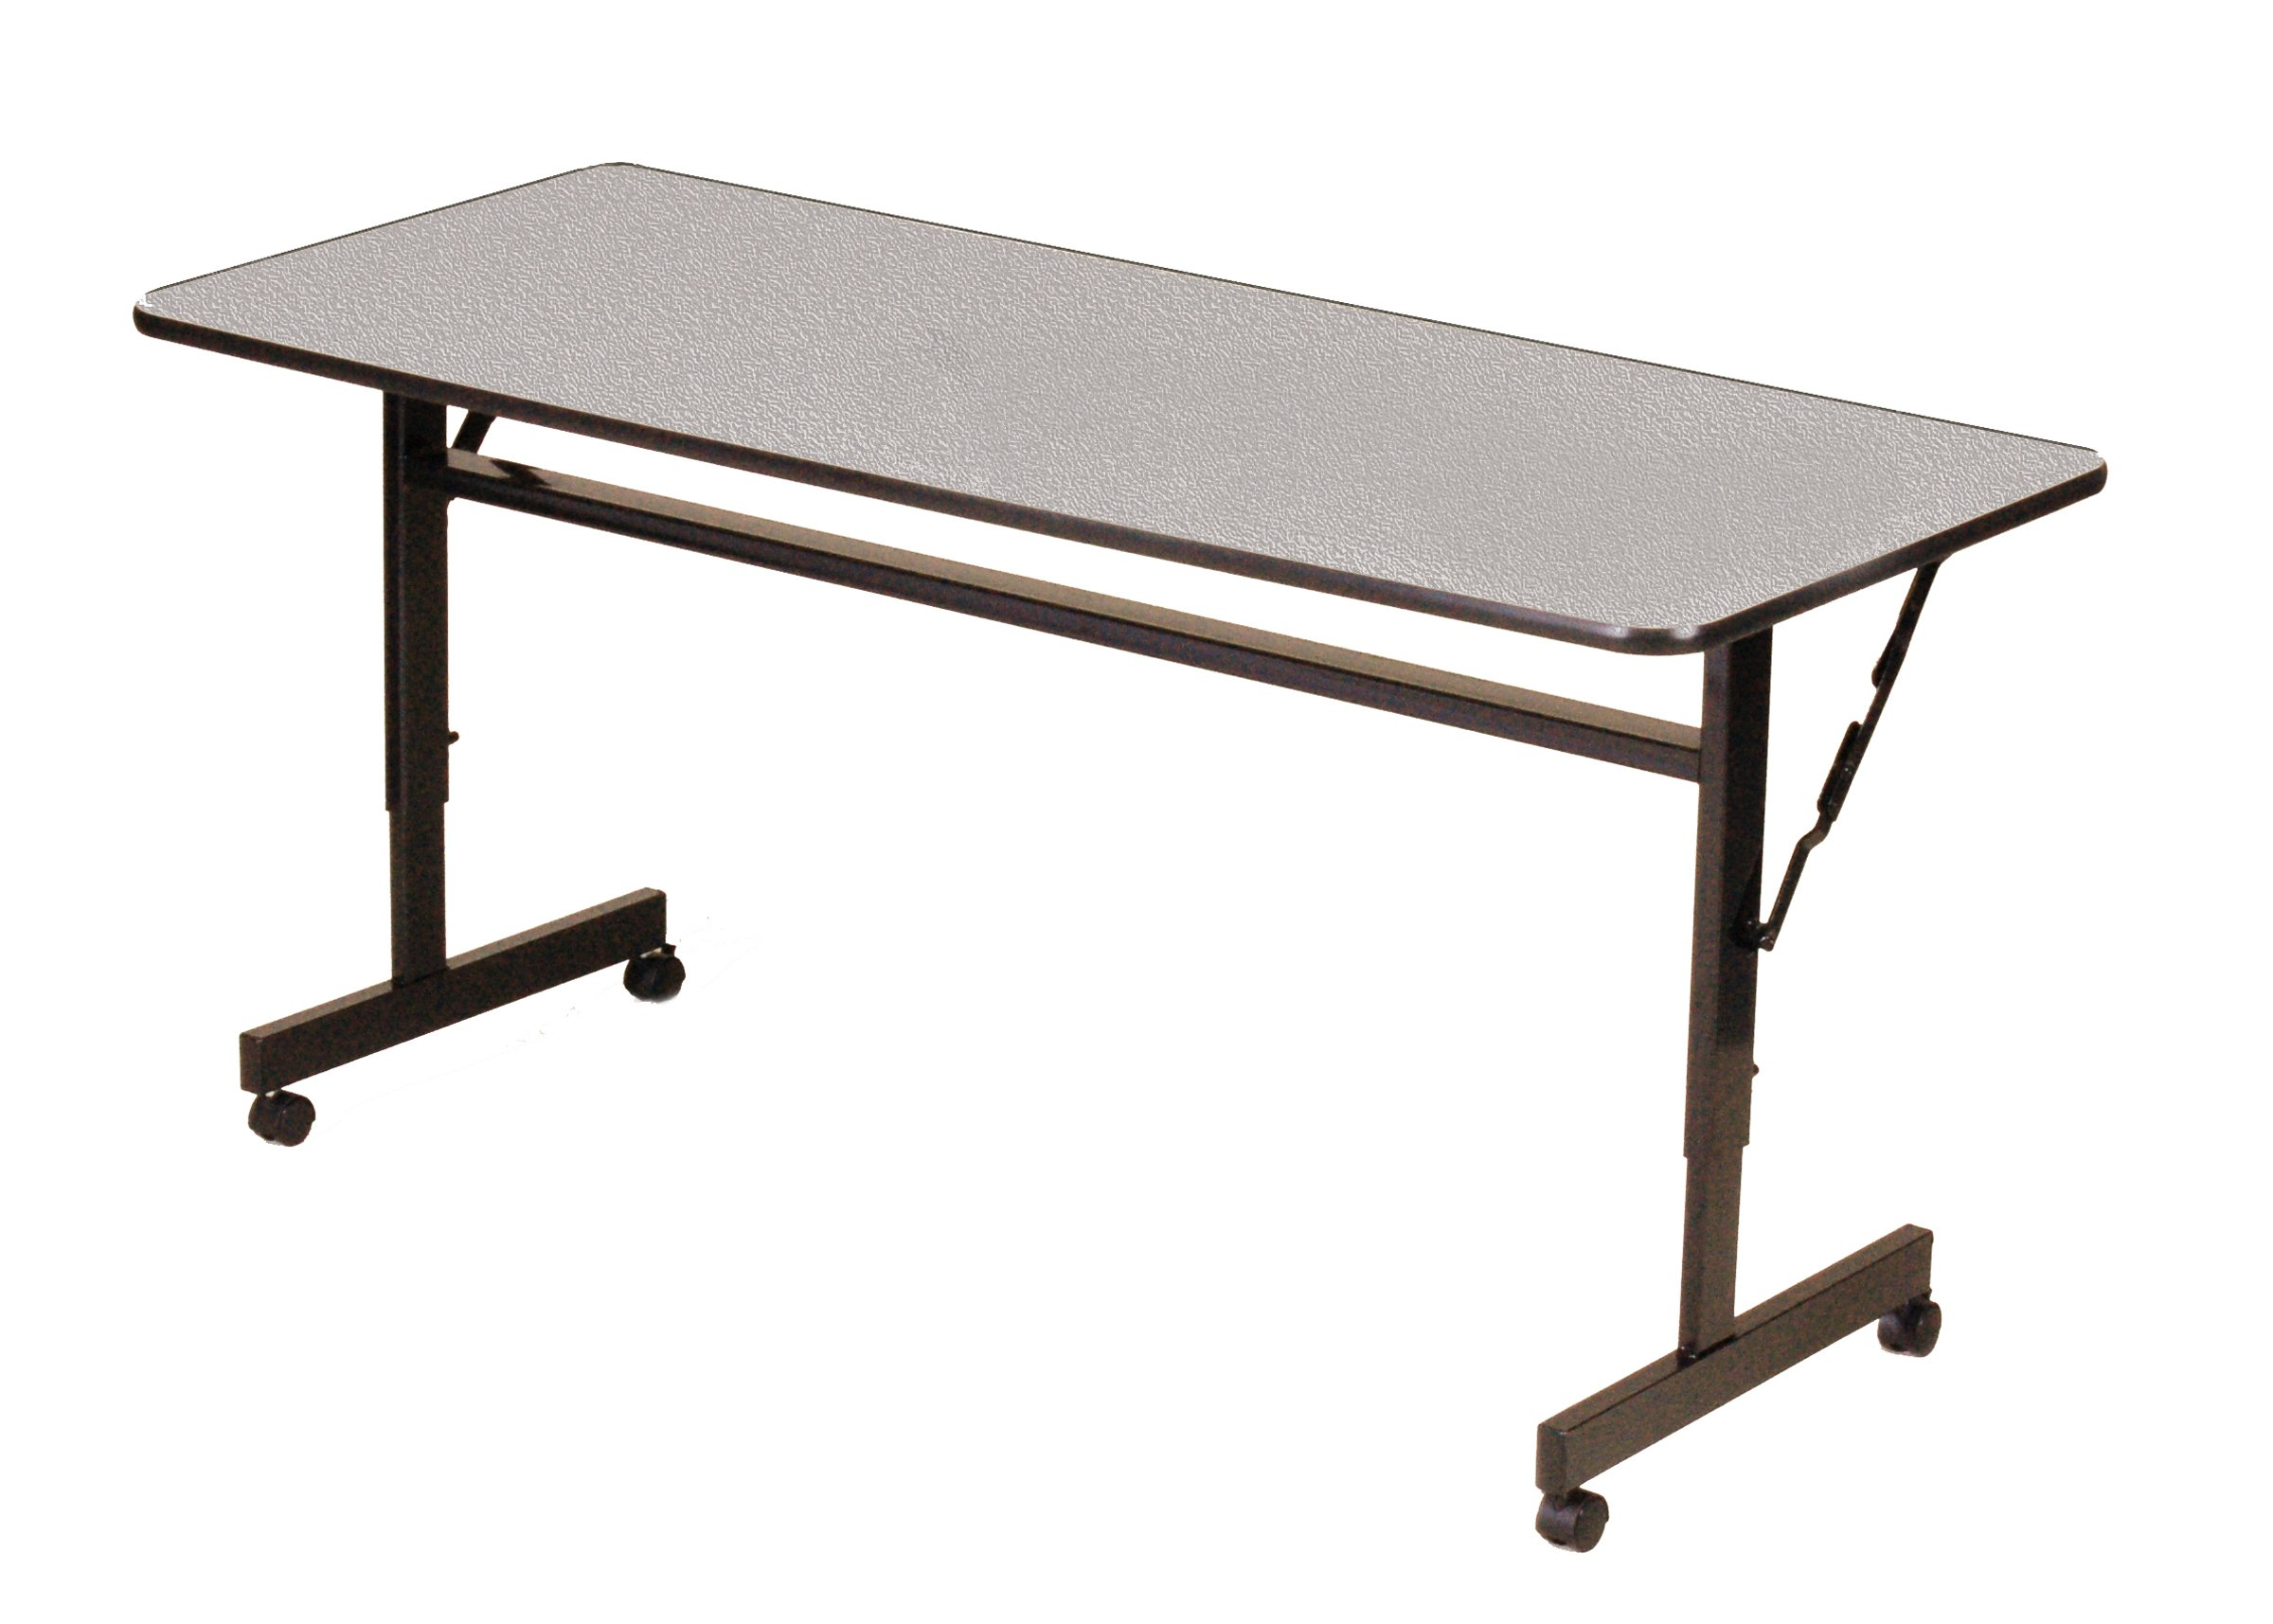 Correll 24''x72'', EconoLine Flip Top Table, Gray Granite Melamine Top, Adjustable Height Work Station, Castors, Folds Flat & Nests (FT2472M-15) by Correll (Image #1)